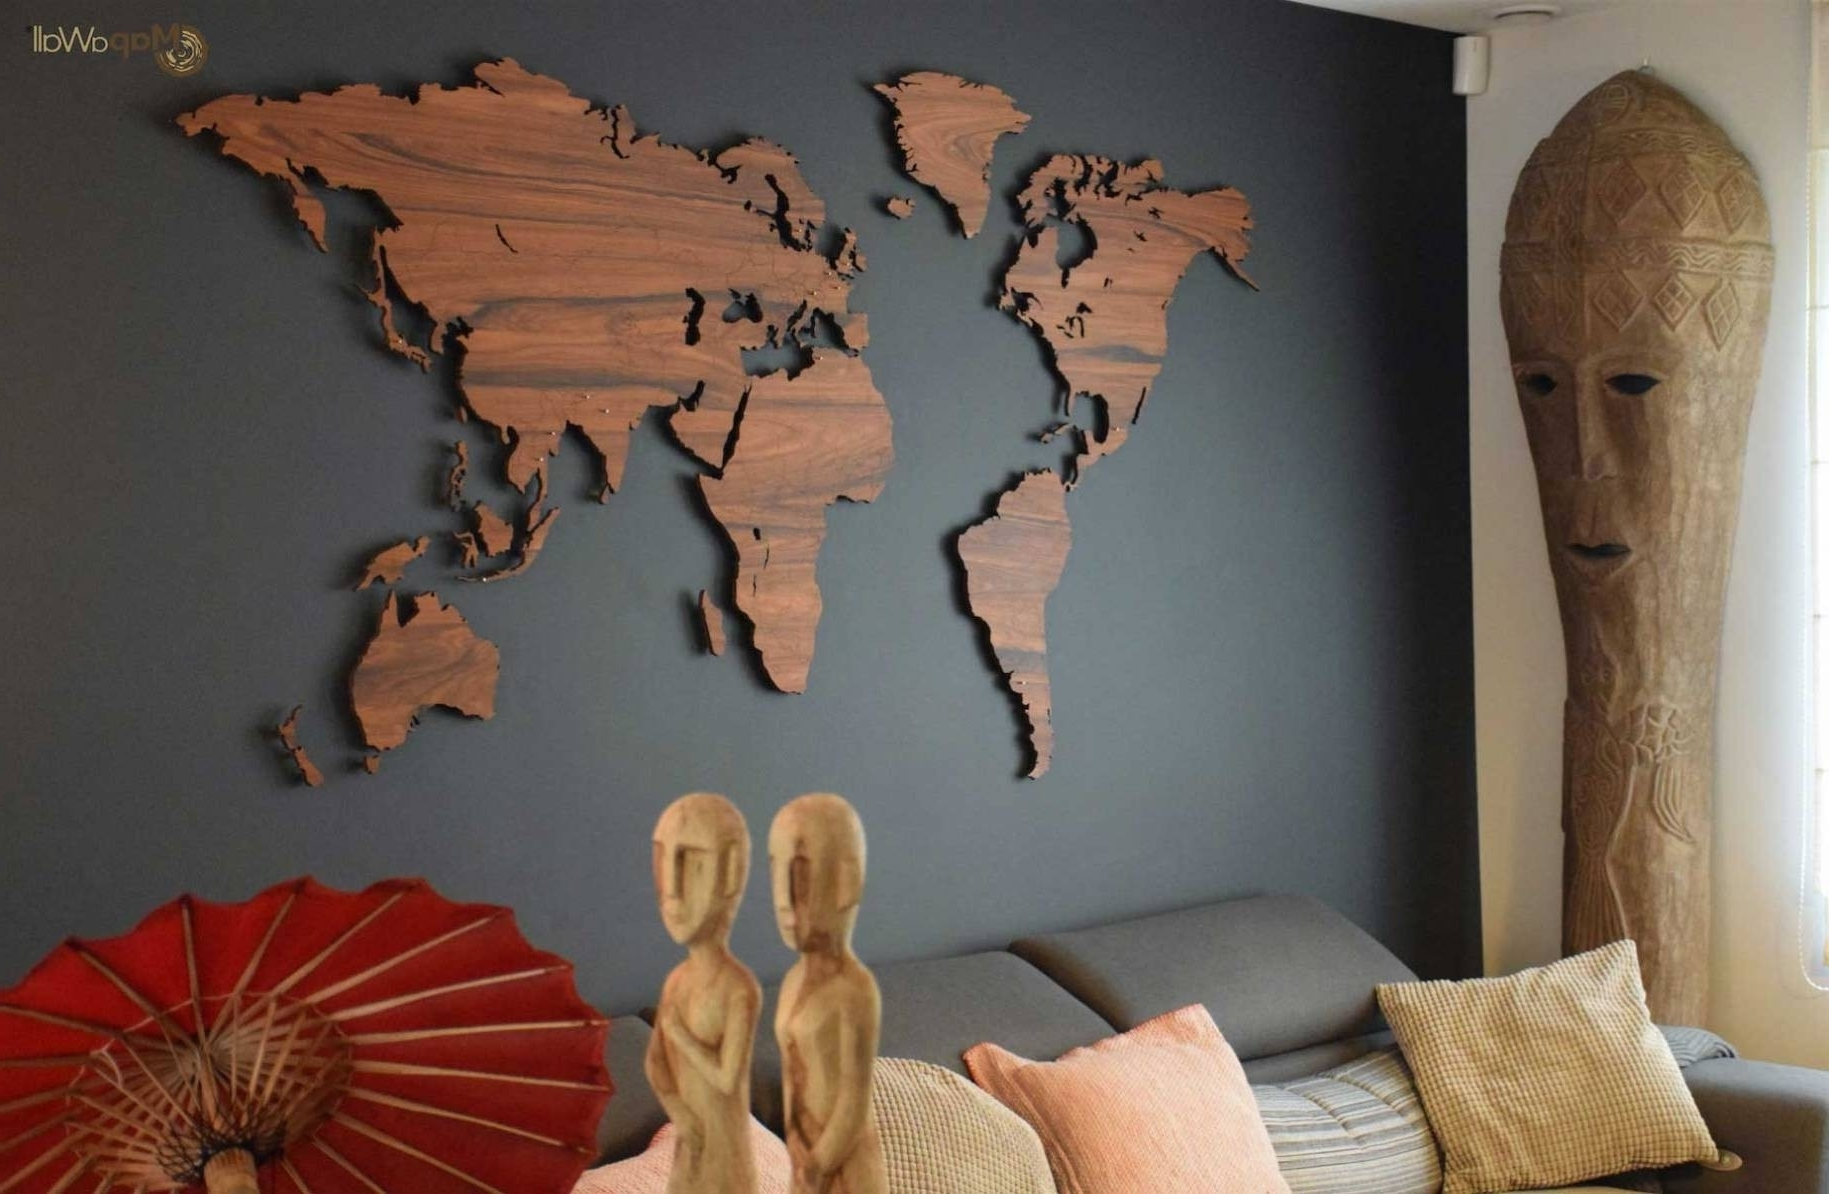 Best And Newest World Map For Wall Art Regarding Mapawall Wooden World Map Palisander With Country Borders Pertaining (View 2 of 15)